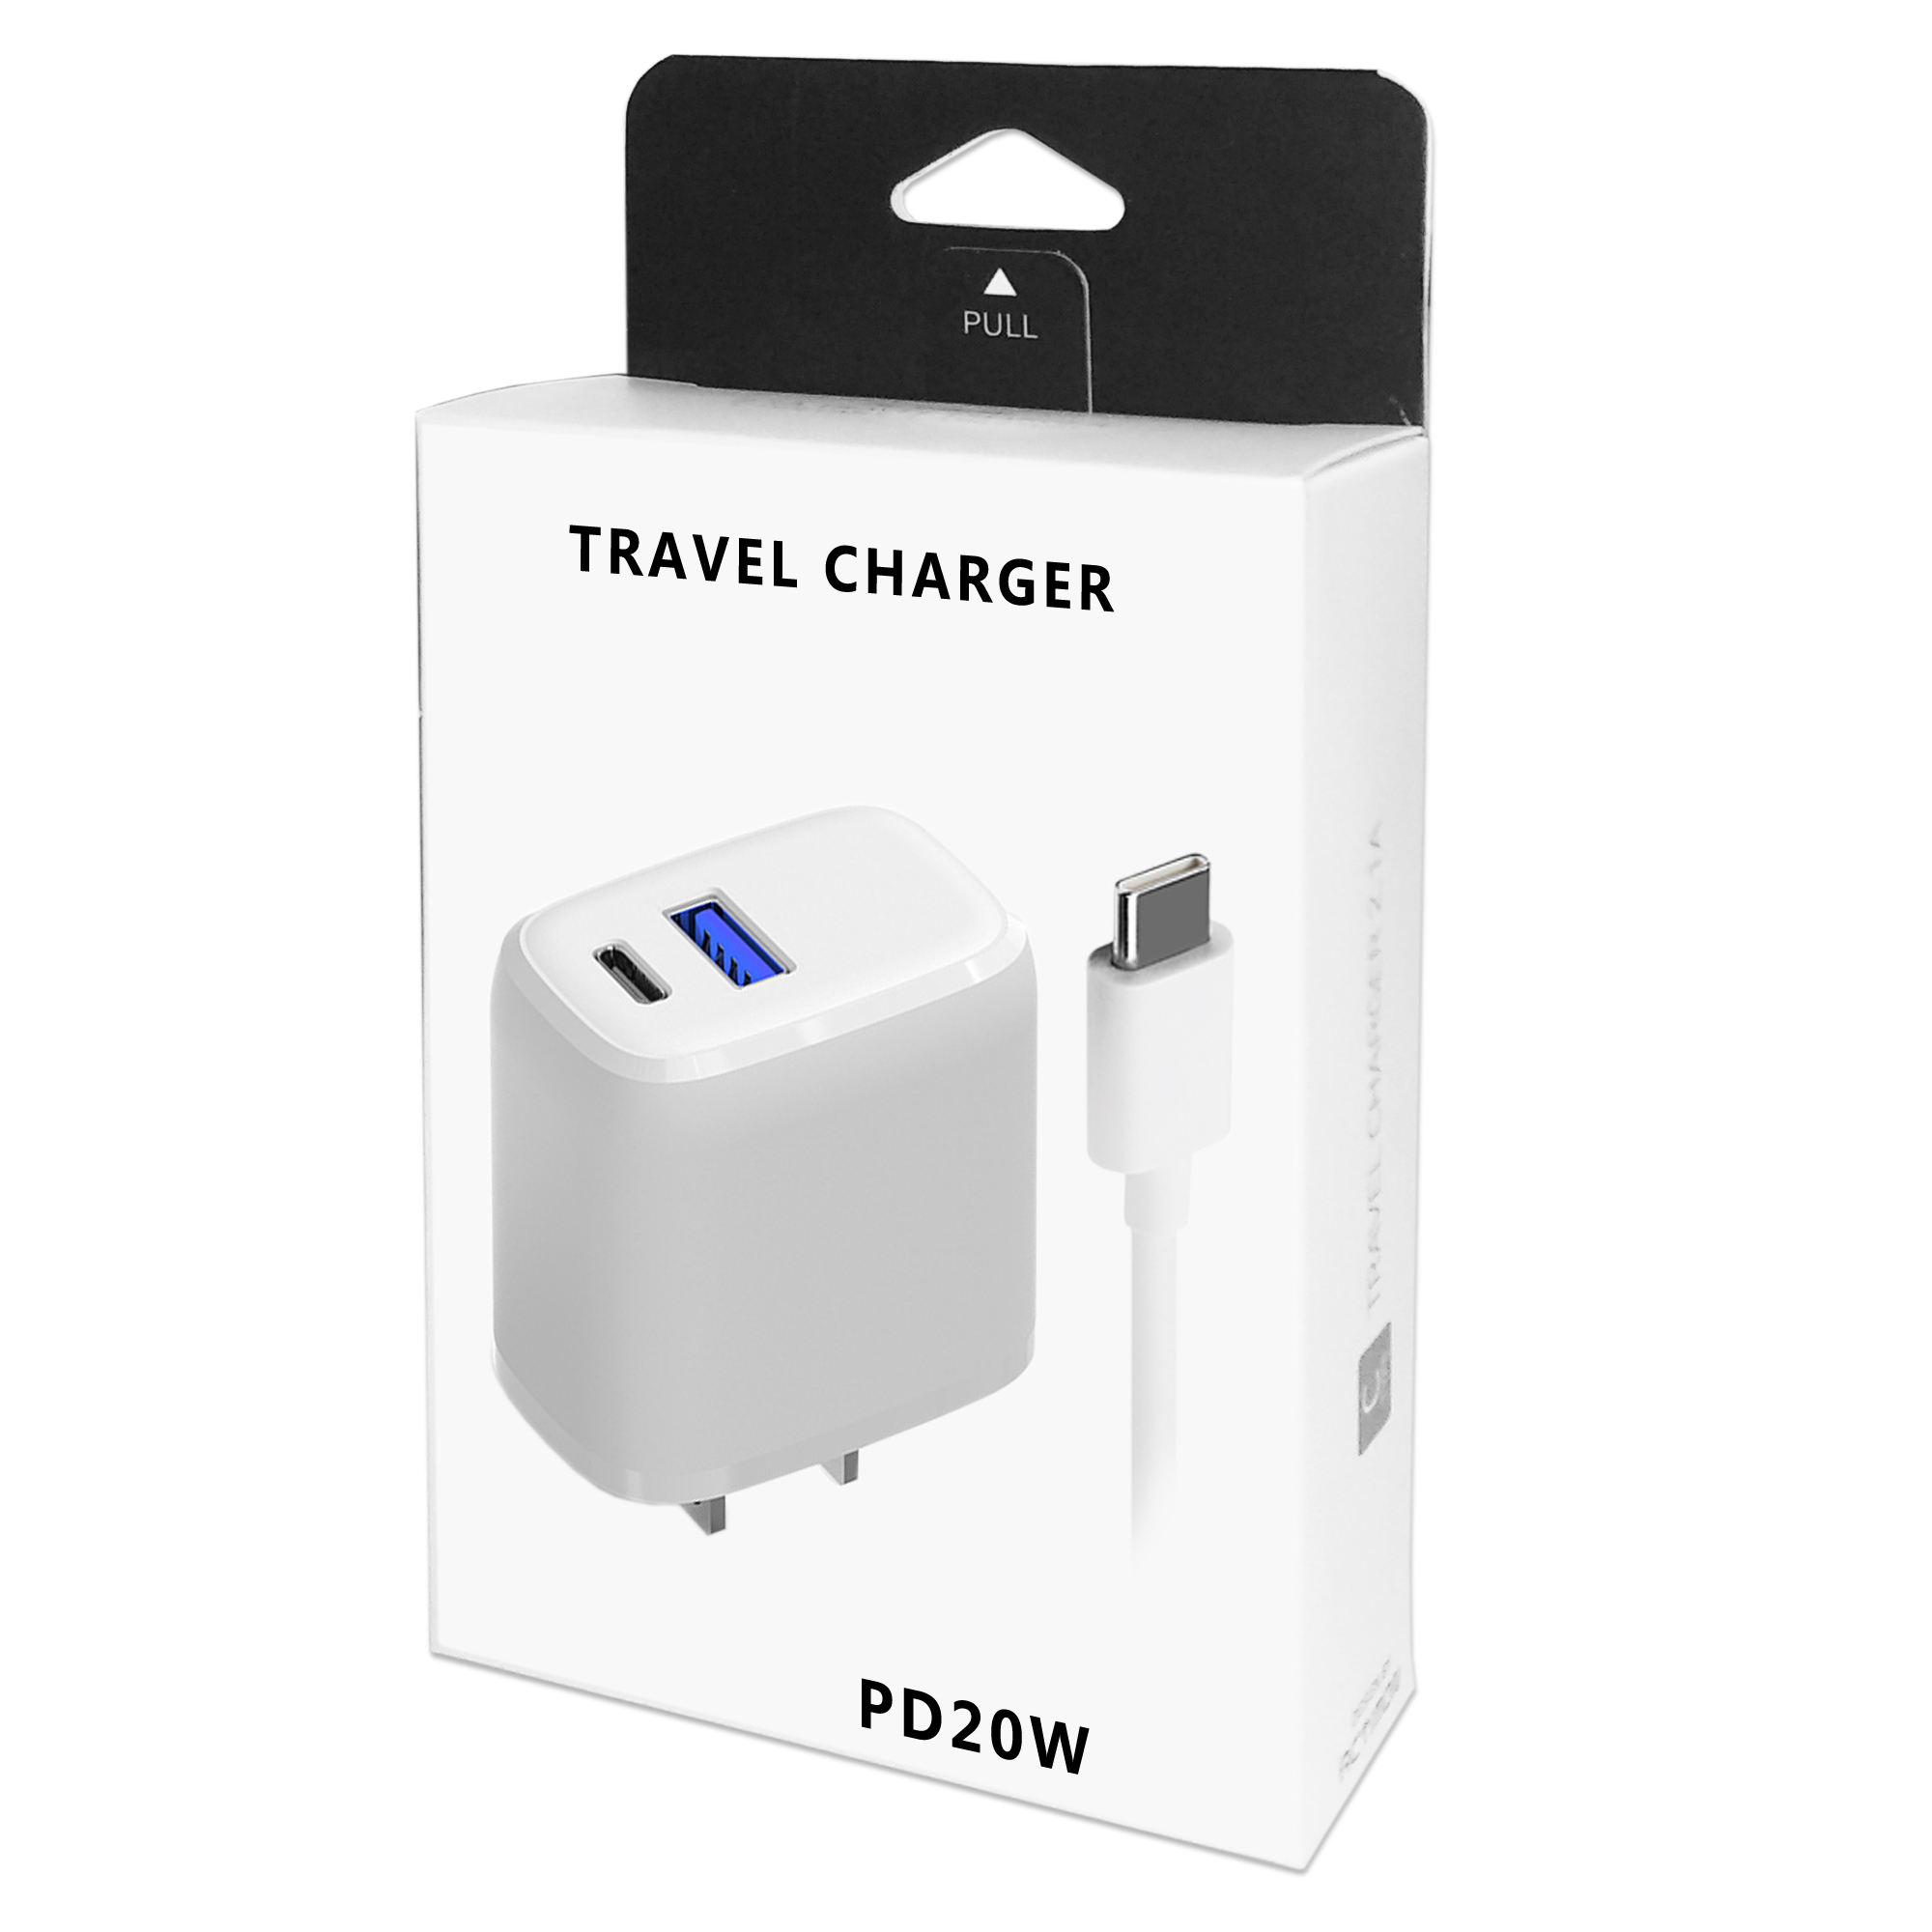 CE FCC Cấp Giấy Chứng Nhận 20 Wát EU US UK KC Travel Charger Với 1M Cable Gift Box Travel Charger <span class=keywords><strong>Kit</strong></span> Swholesaler